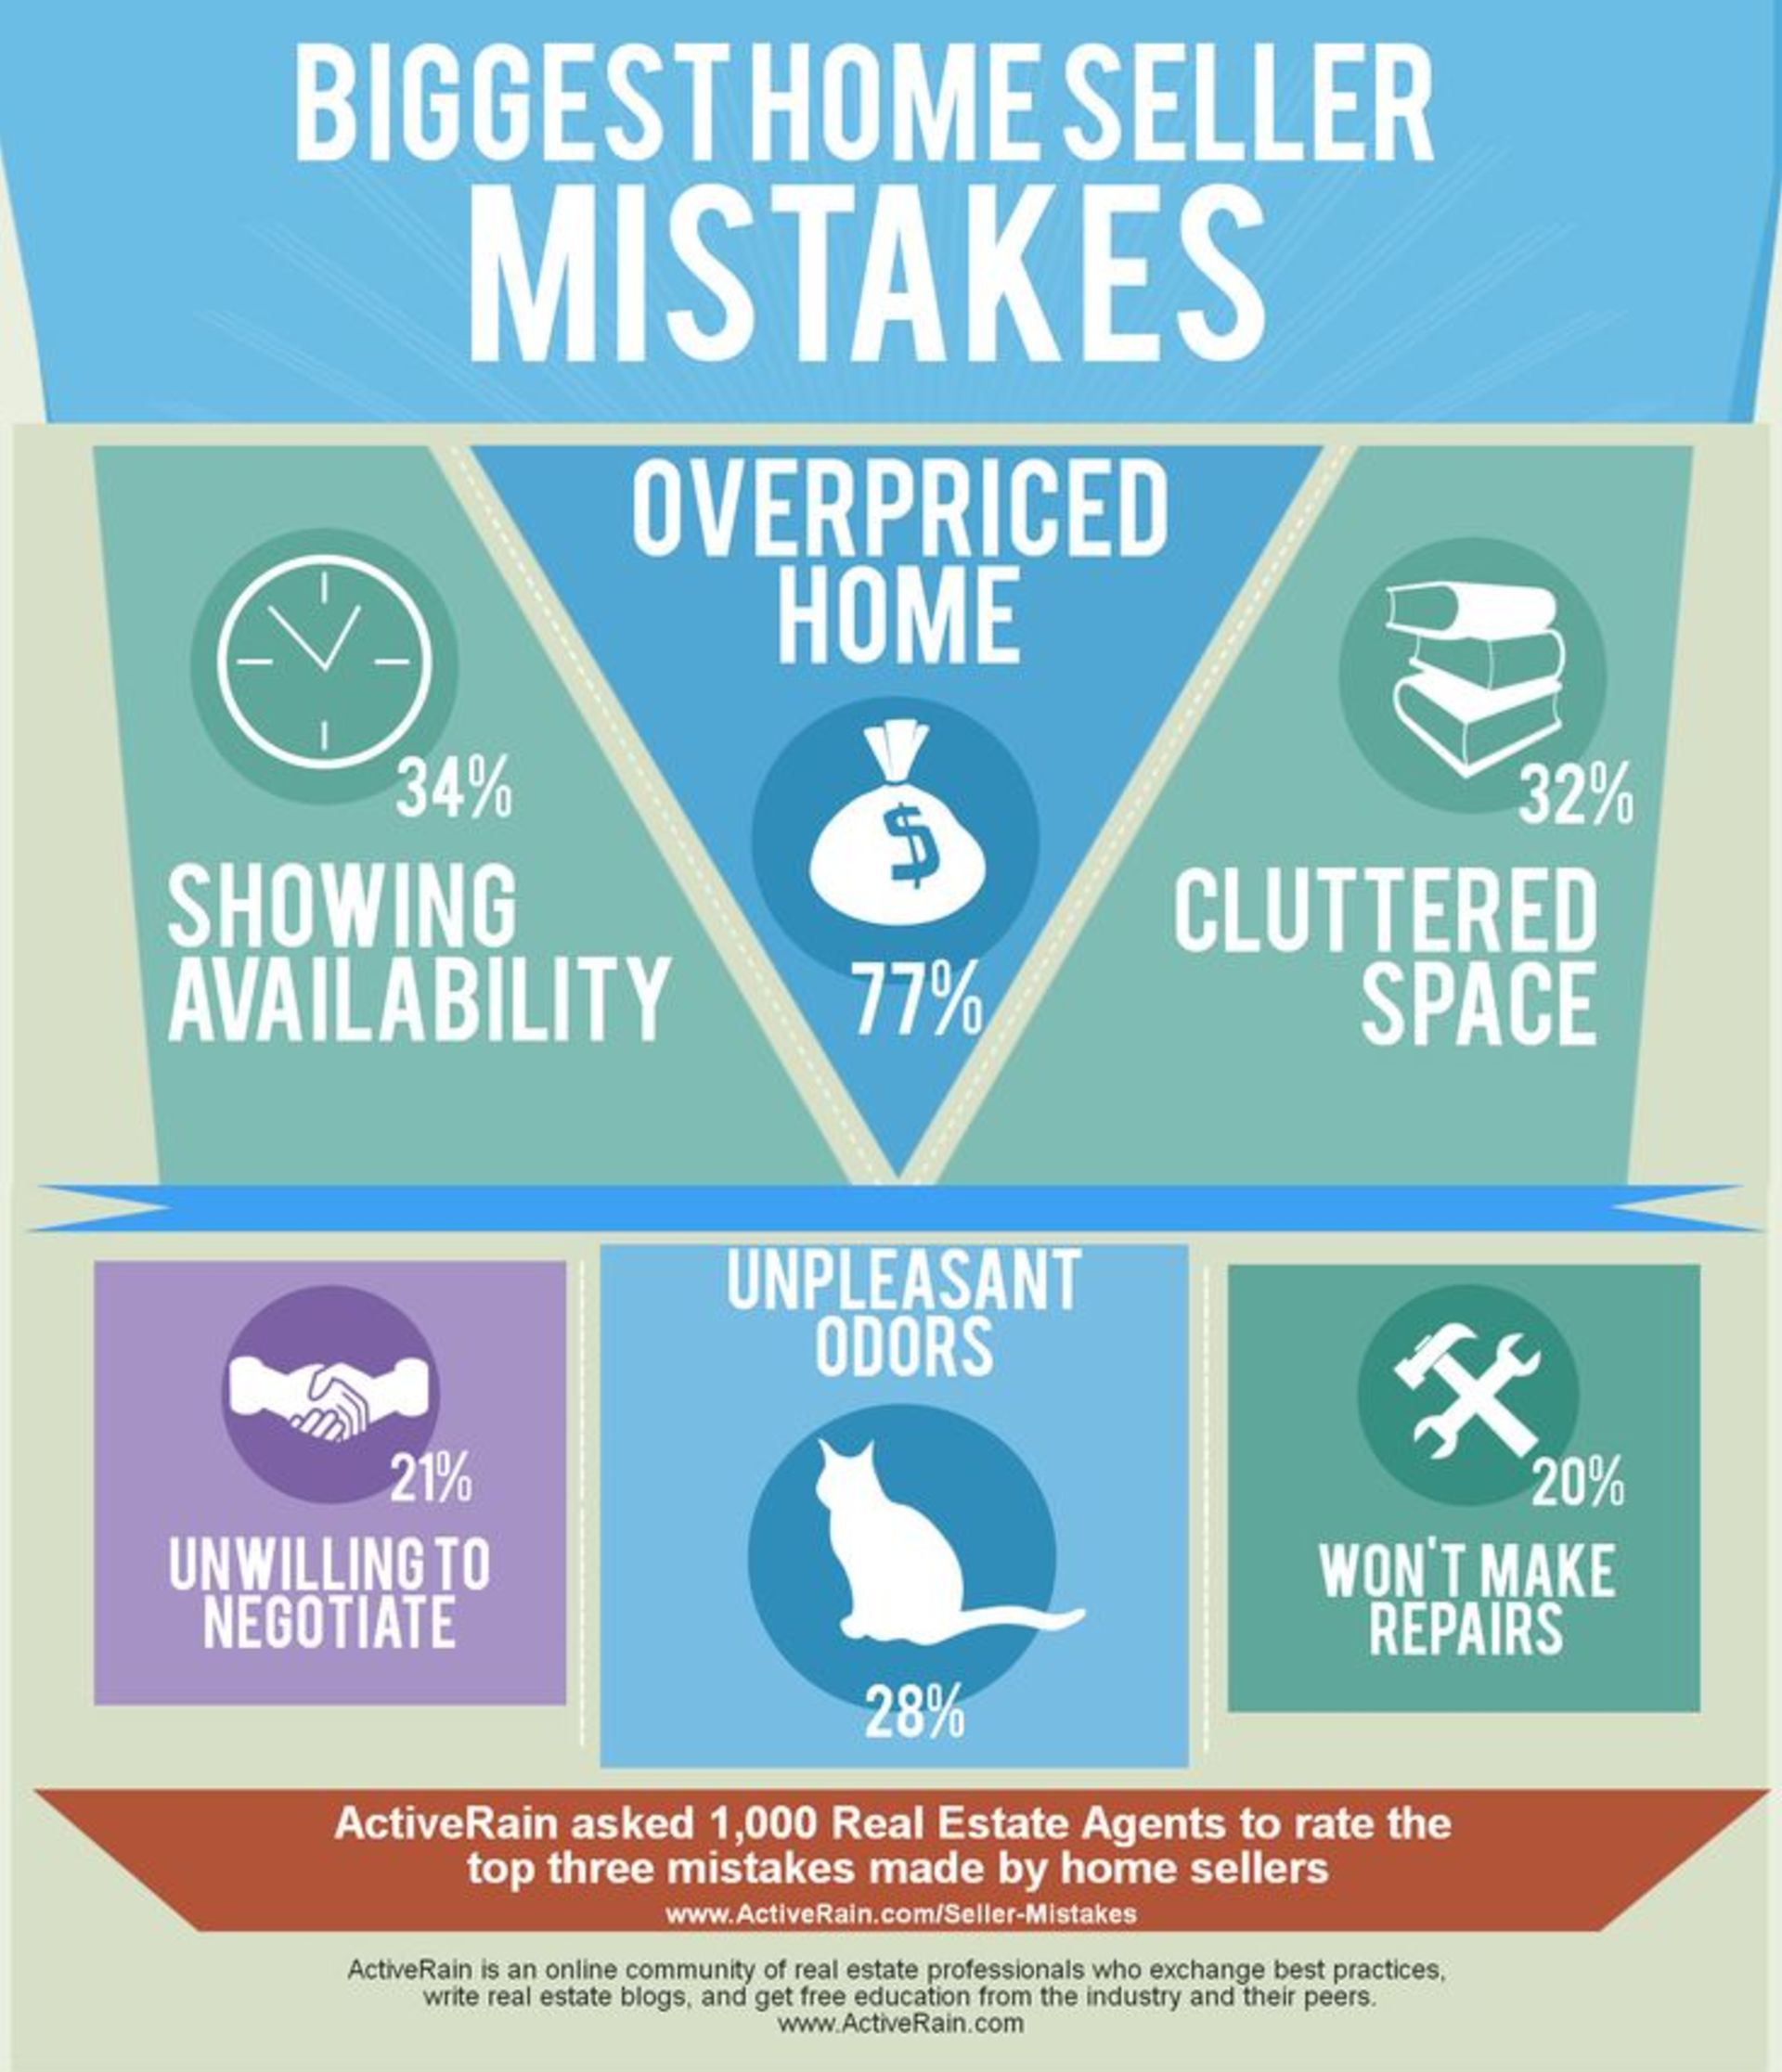 6 Biggest Home Seller Mistakes in New Orleans